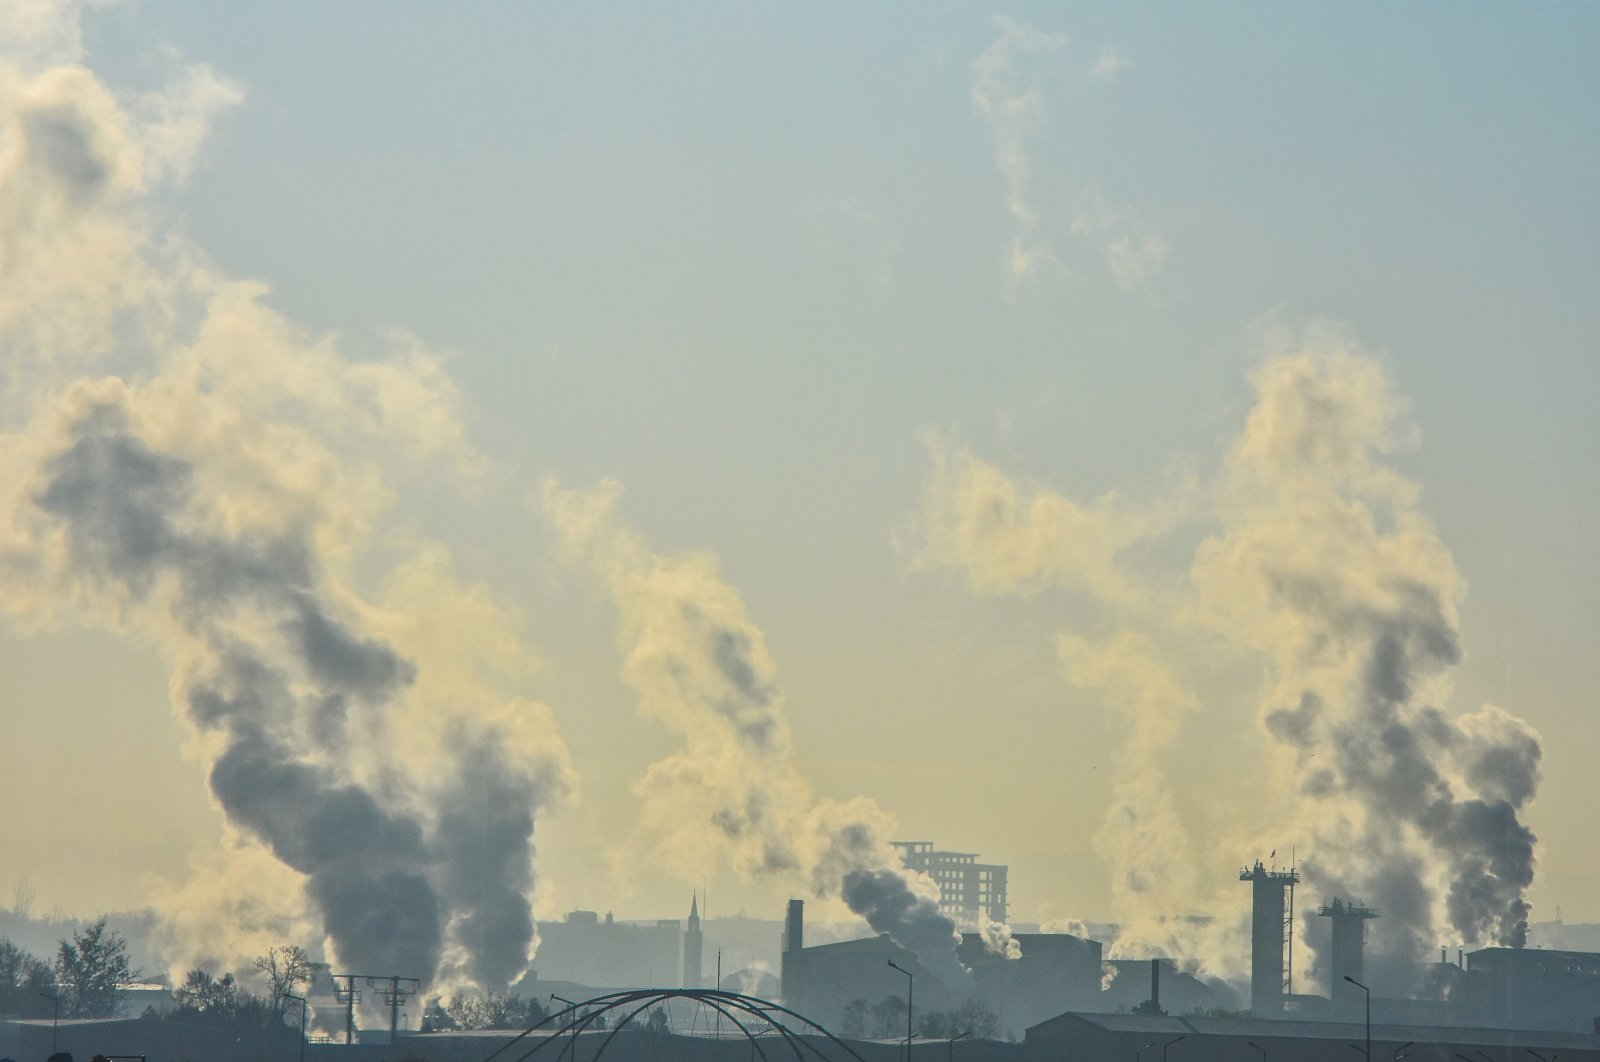 Smoke rises from the chimneys of a factory in Etimesgut district, in the capital Ankara, Nov. 28, 2020. (GETTY IMAGES)